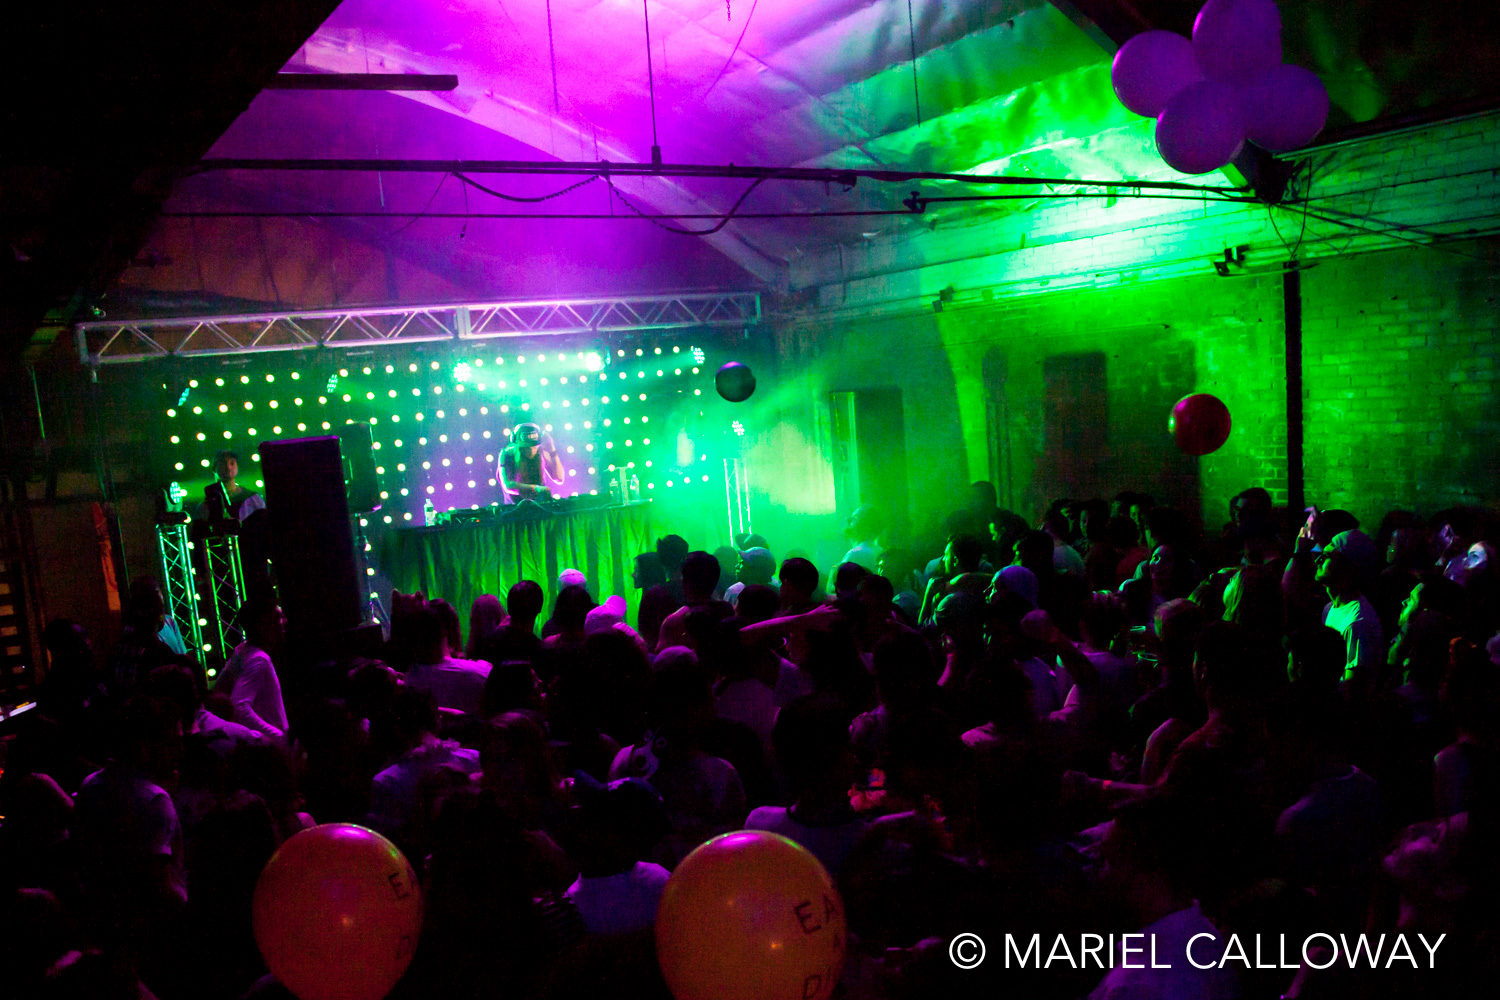 Los-Angeles-Concert-Photography-Small-sRGB-32.jpg